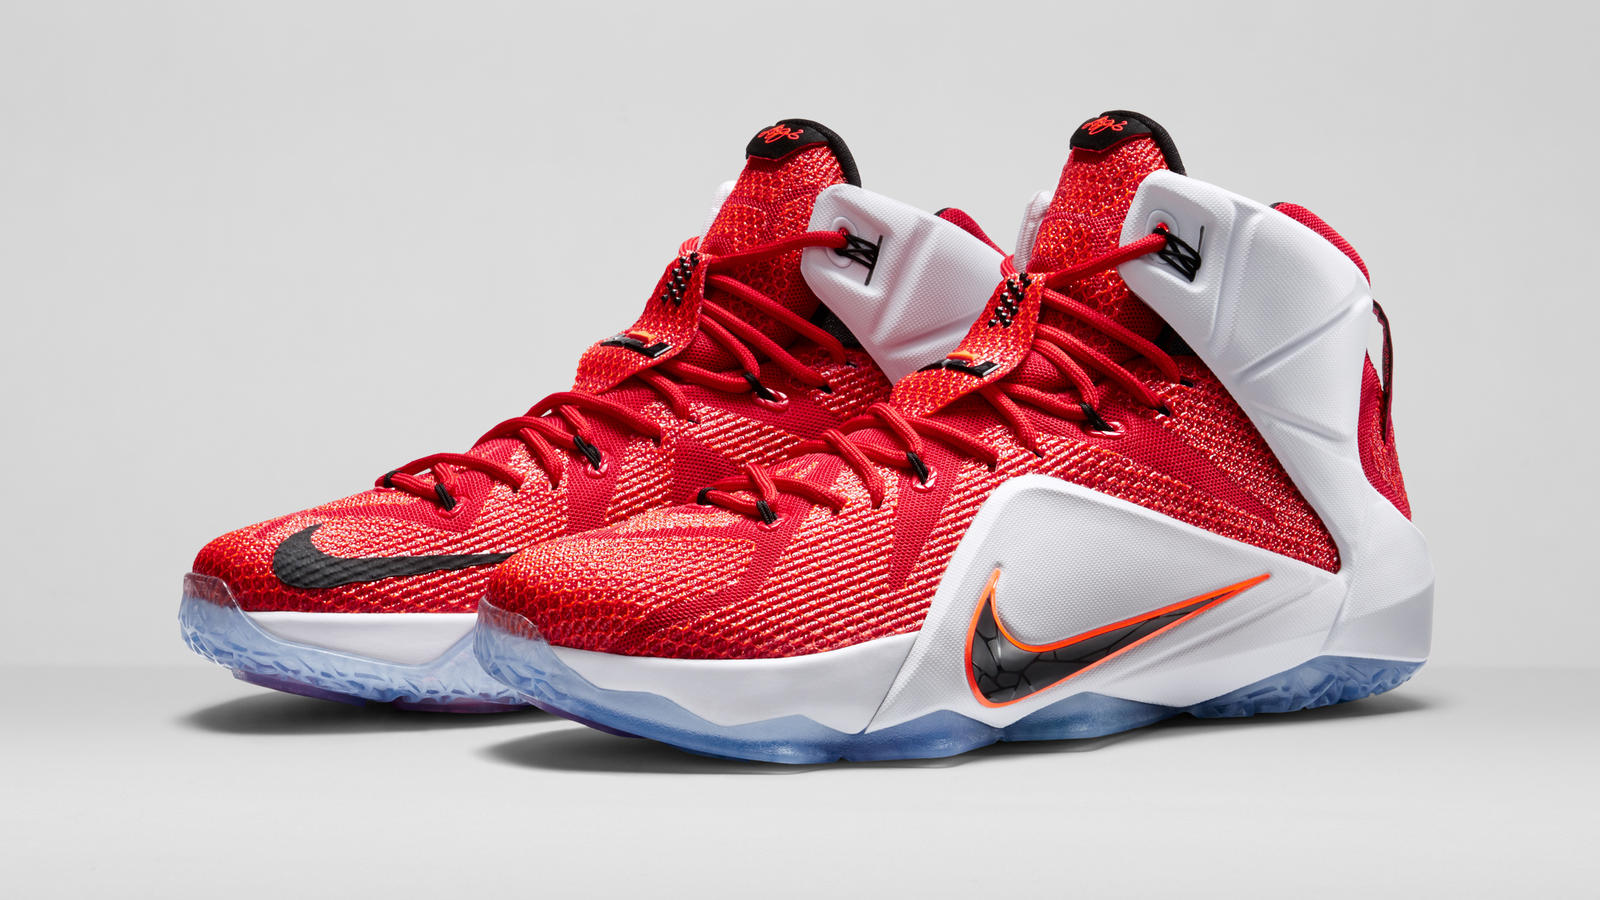 super popular a8867 497be ... Blue Silver-White Basketball Shoes Nike LeBron 12 Cowboys LEBRON 12 HRT  of a Lion ...